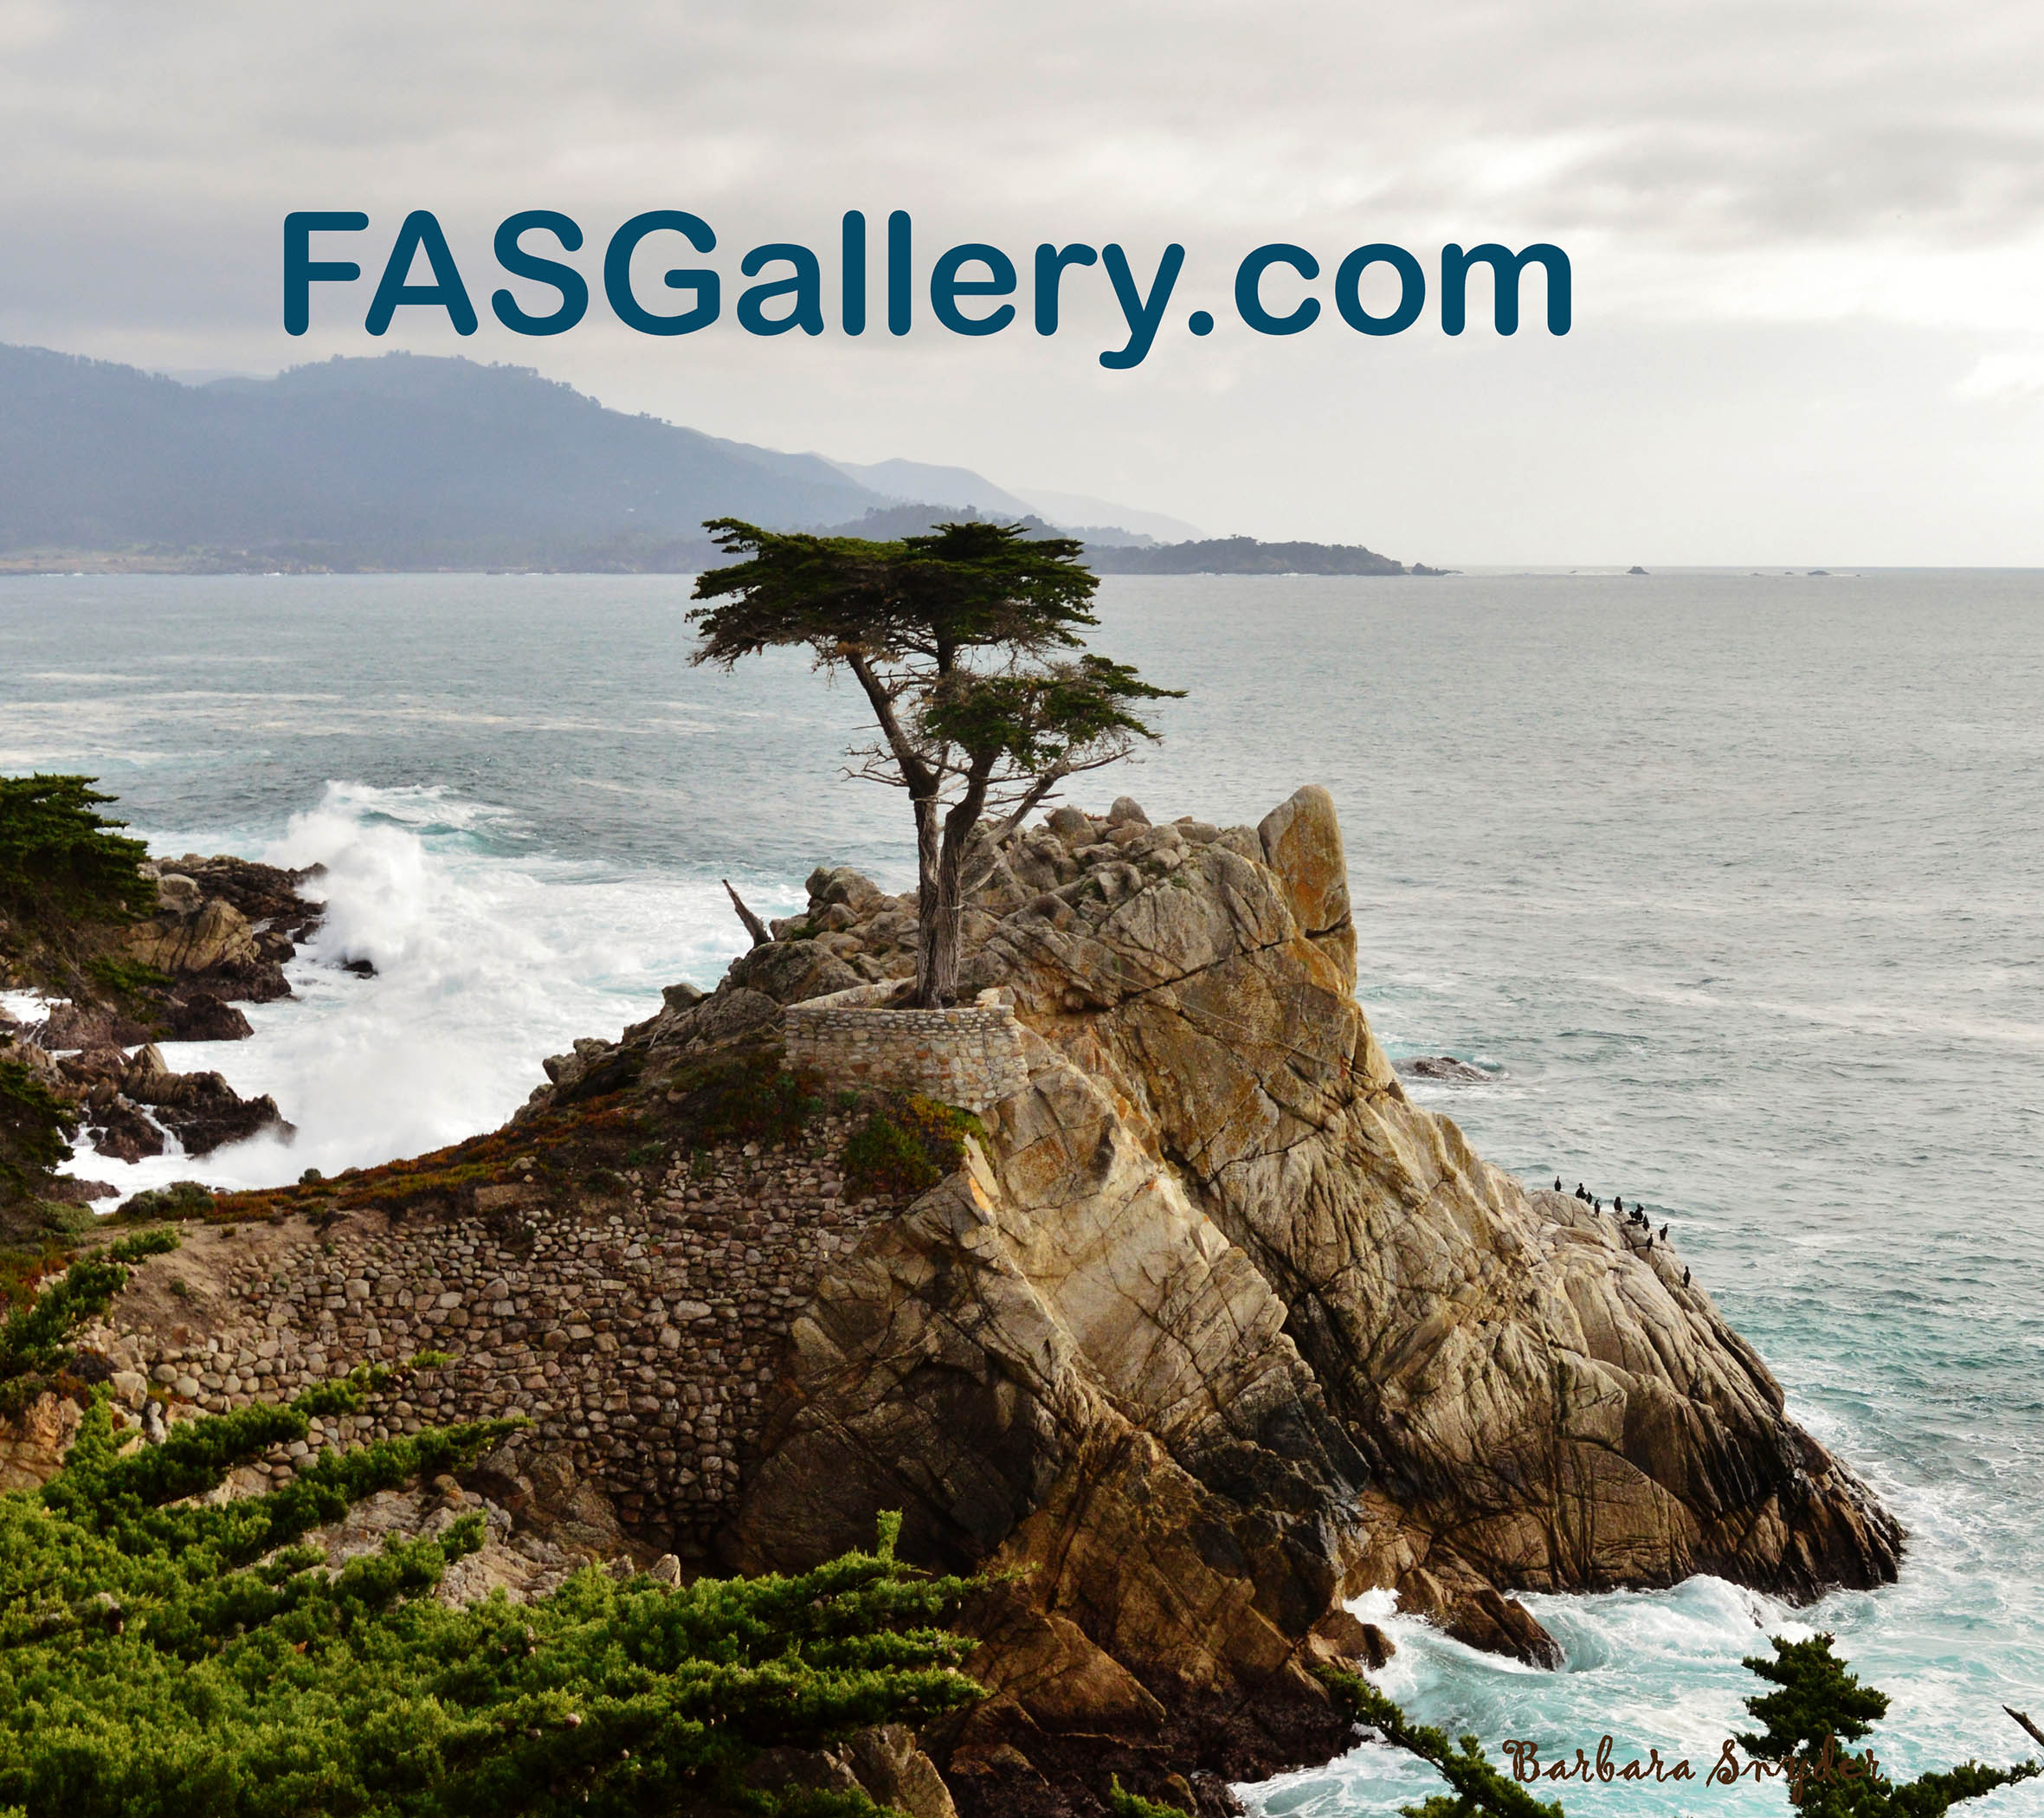 FASGallery